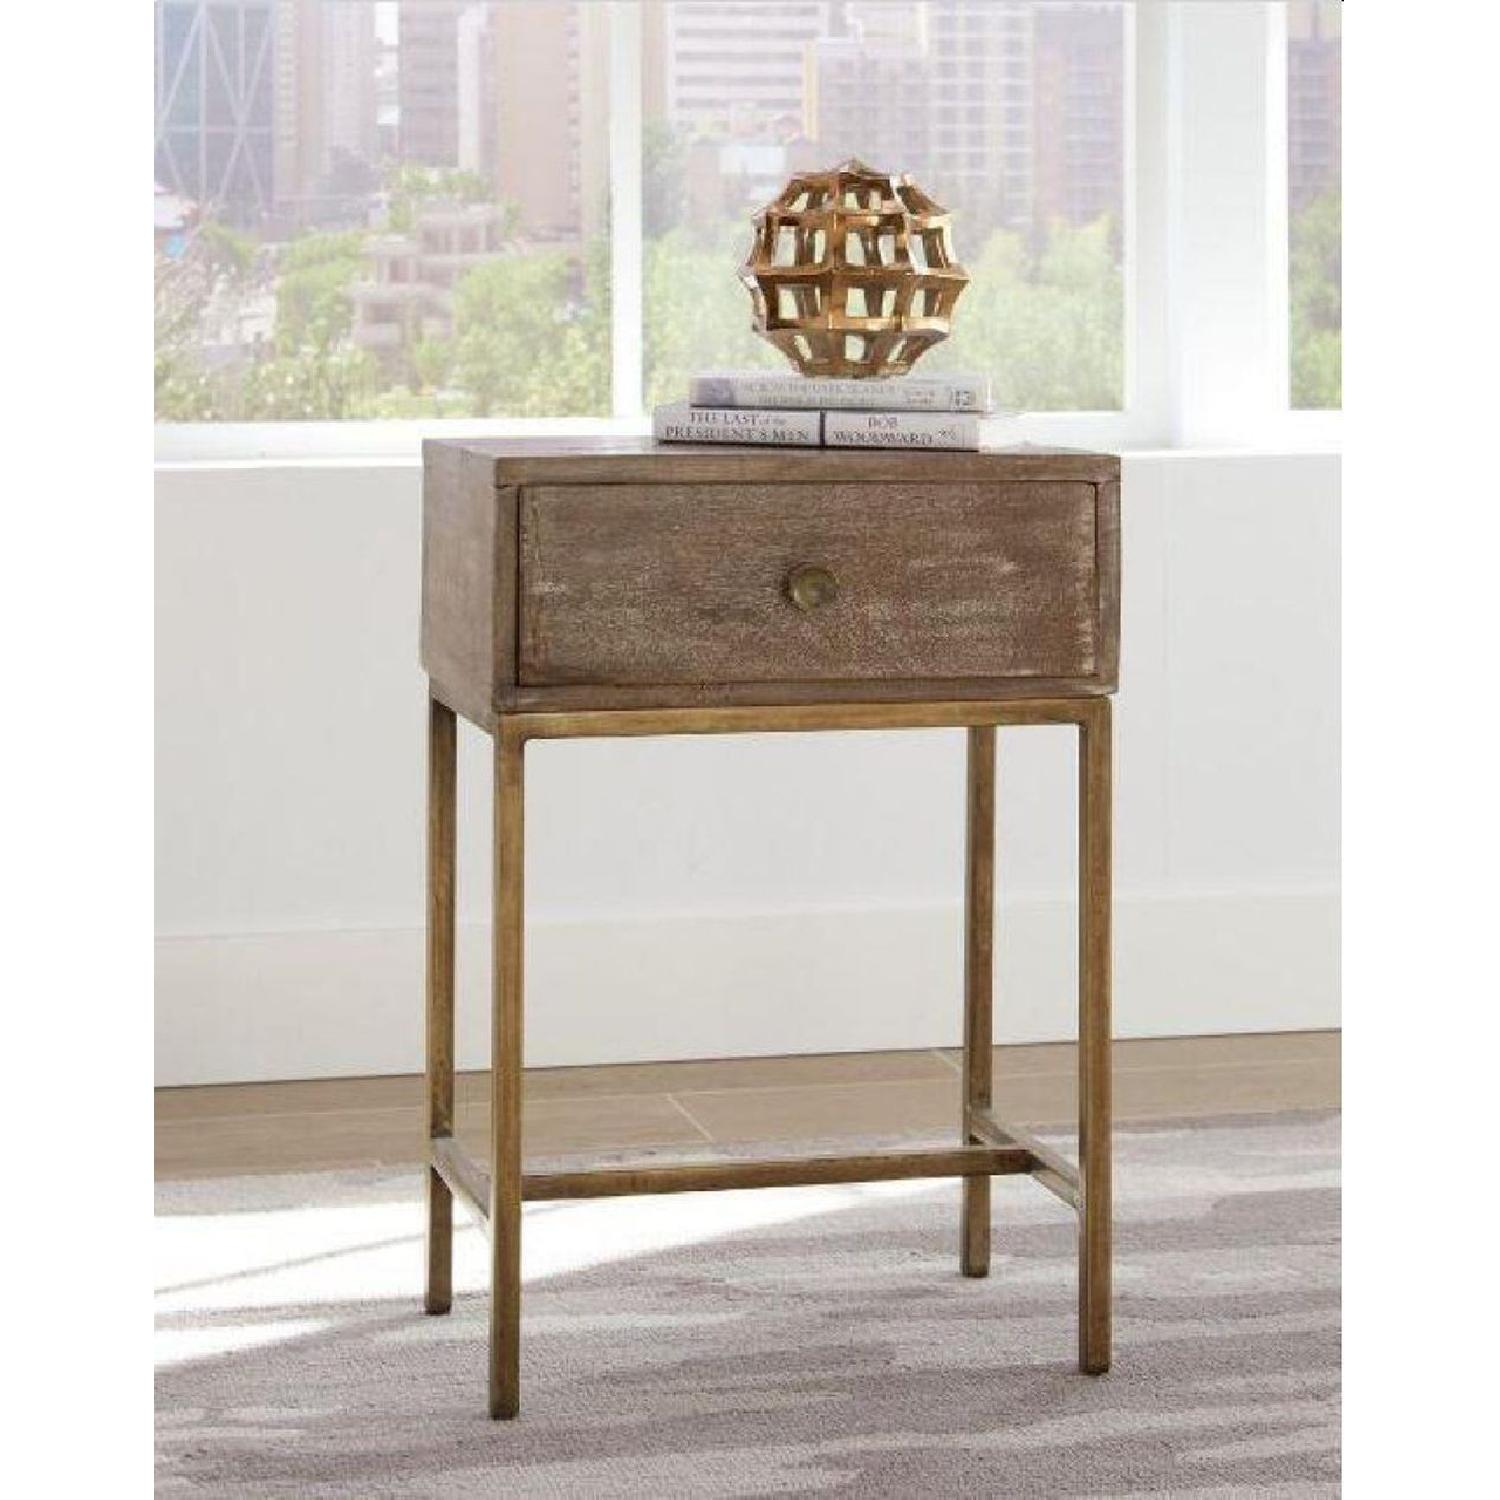 Accent Table w/ Drawer in Weathered Natural & Antique Gold - image-9